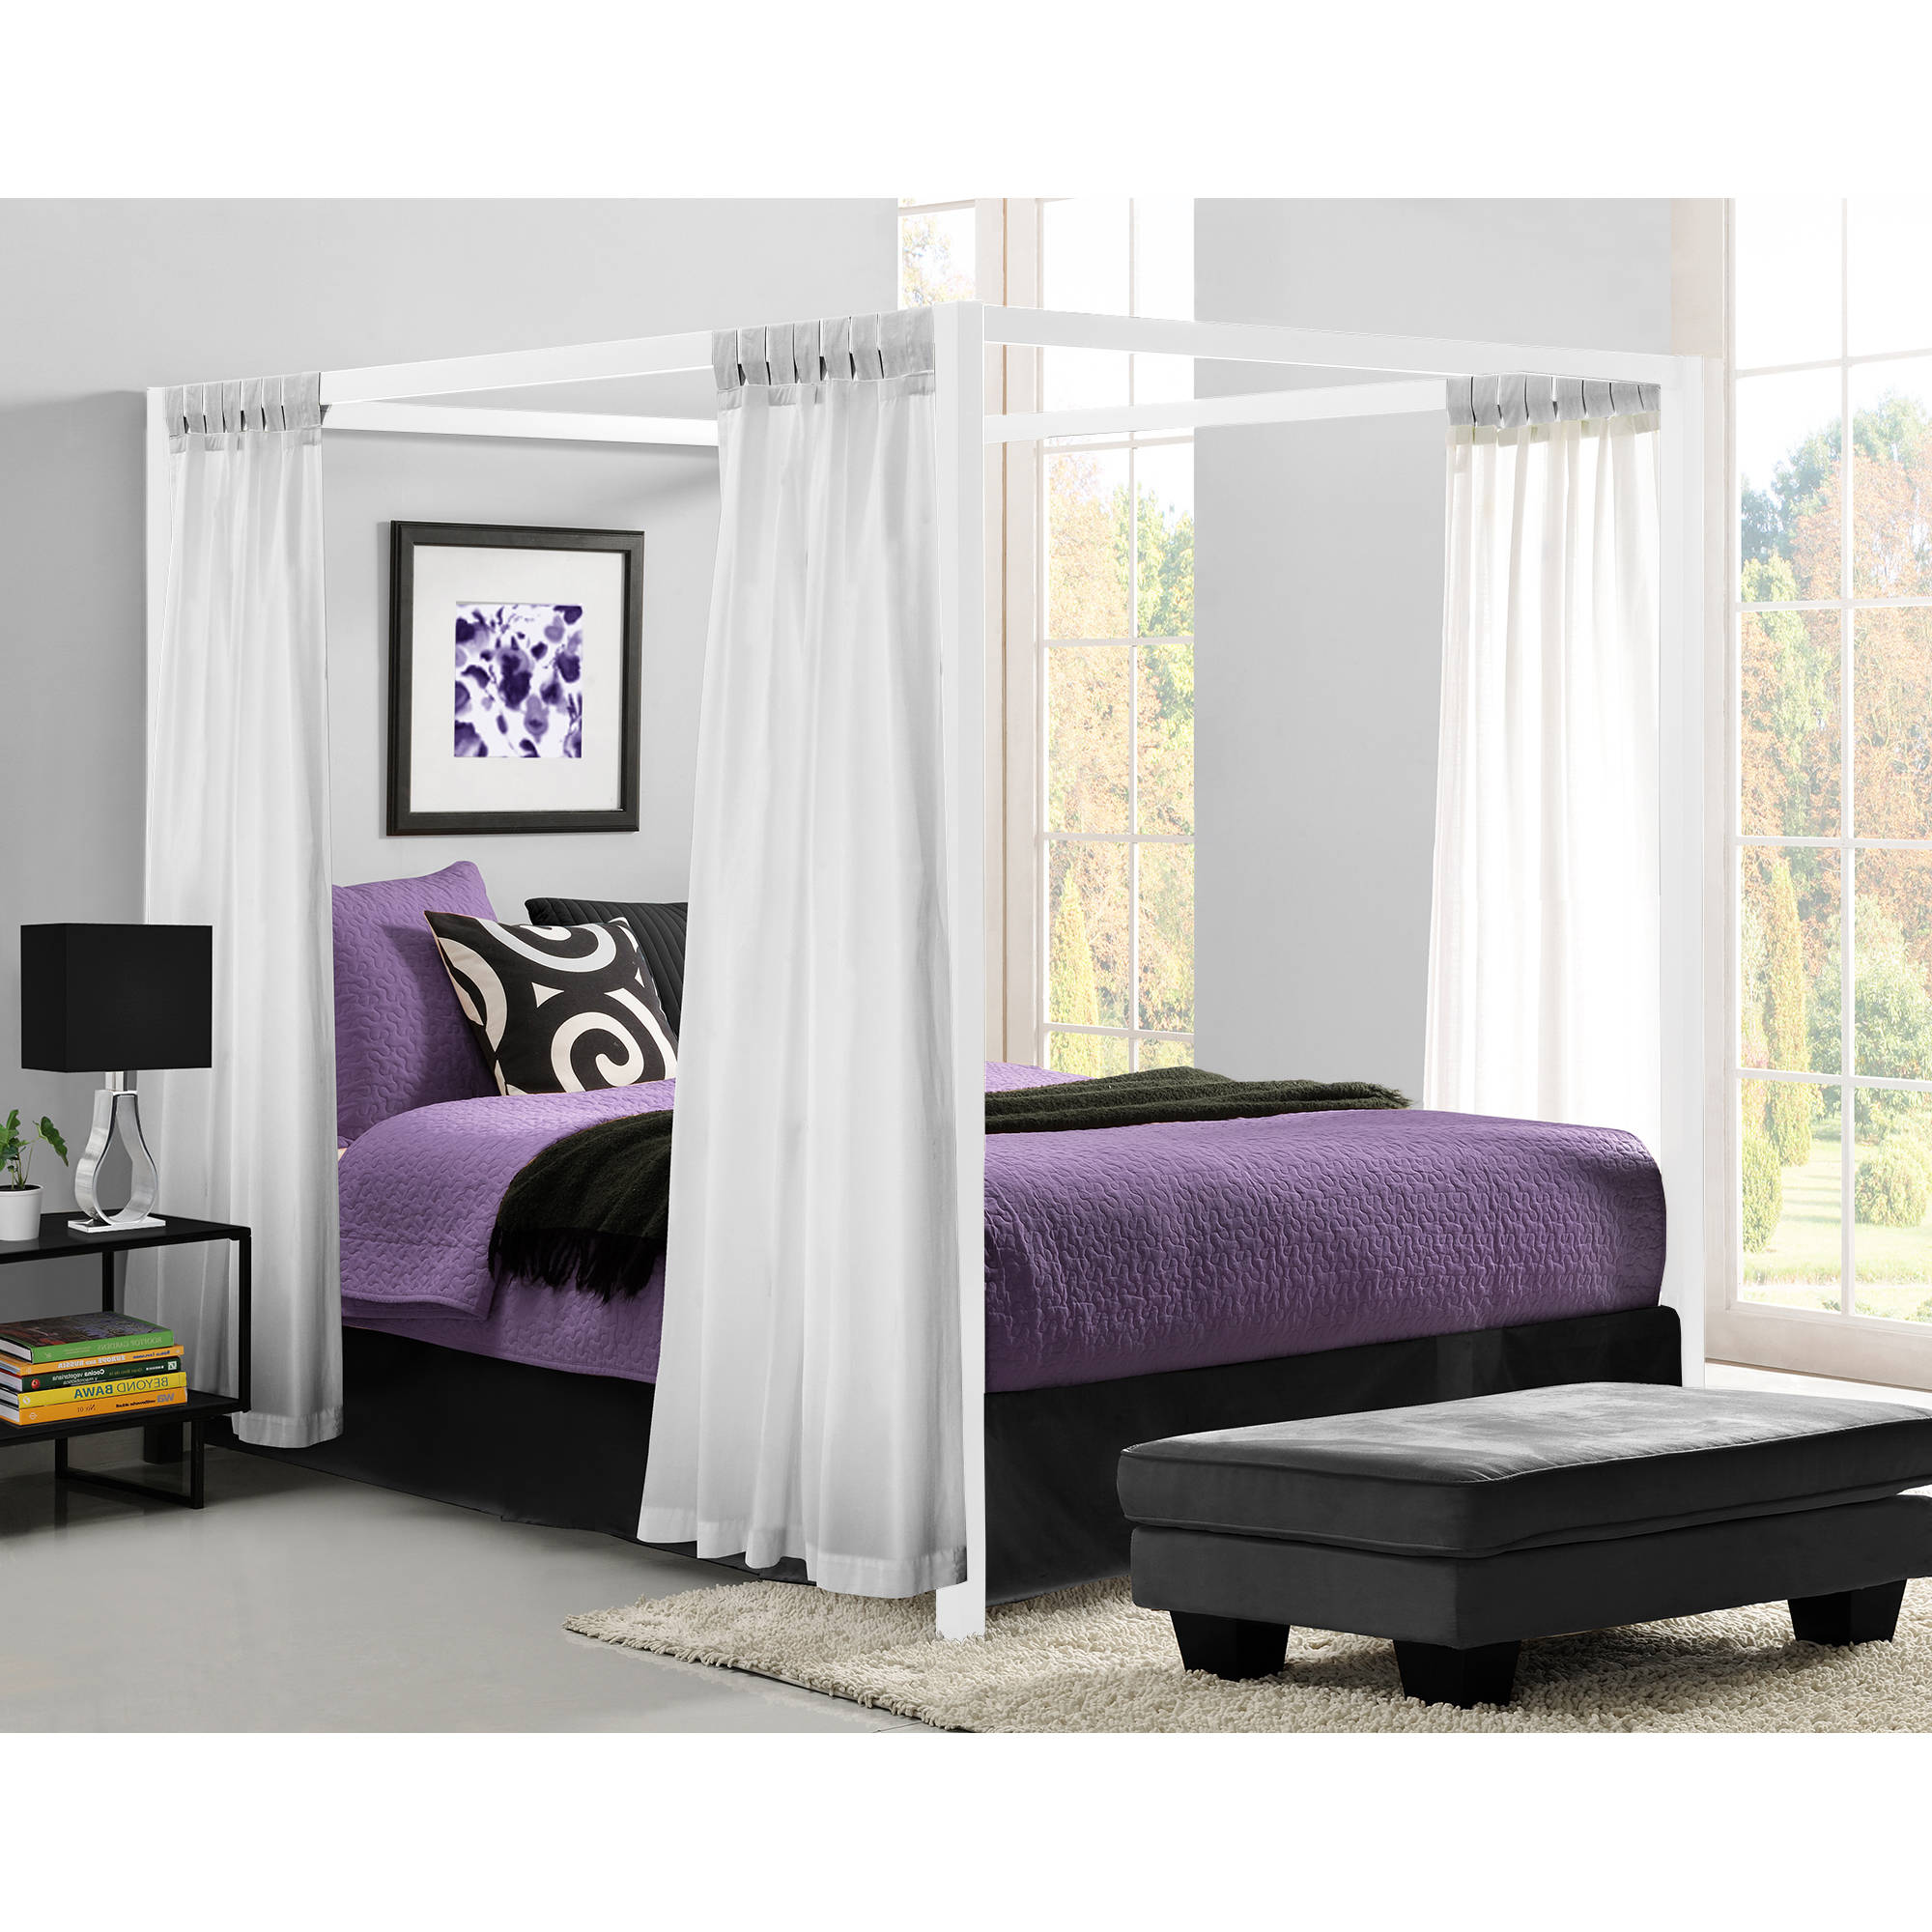 Queen Canopy Bed: Modern Canopy Queen Metal Bed White Platform Bed Frame No